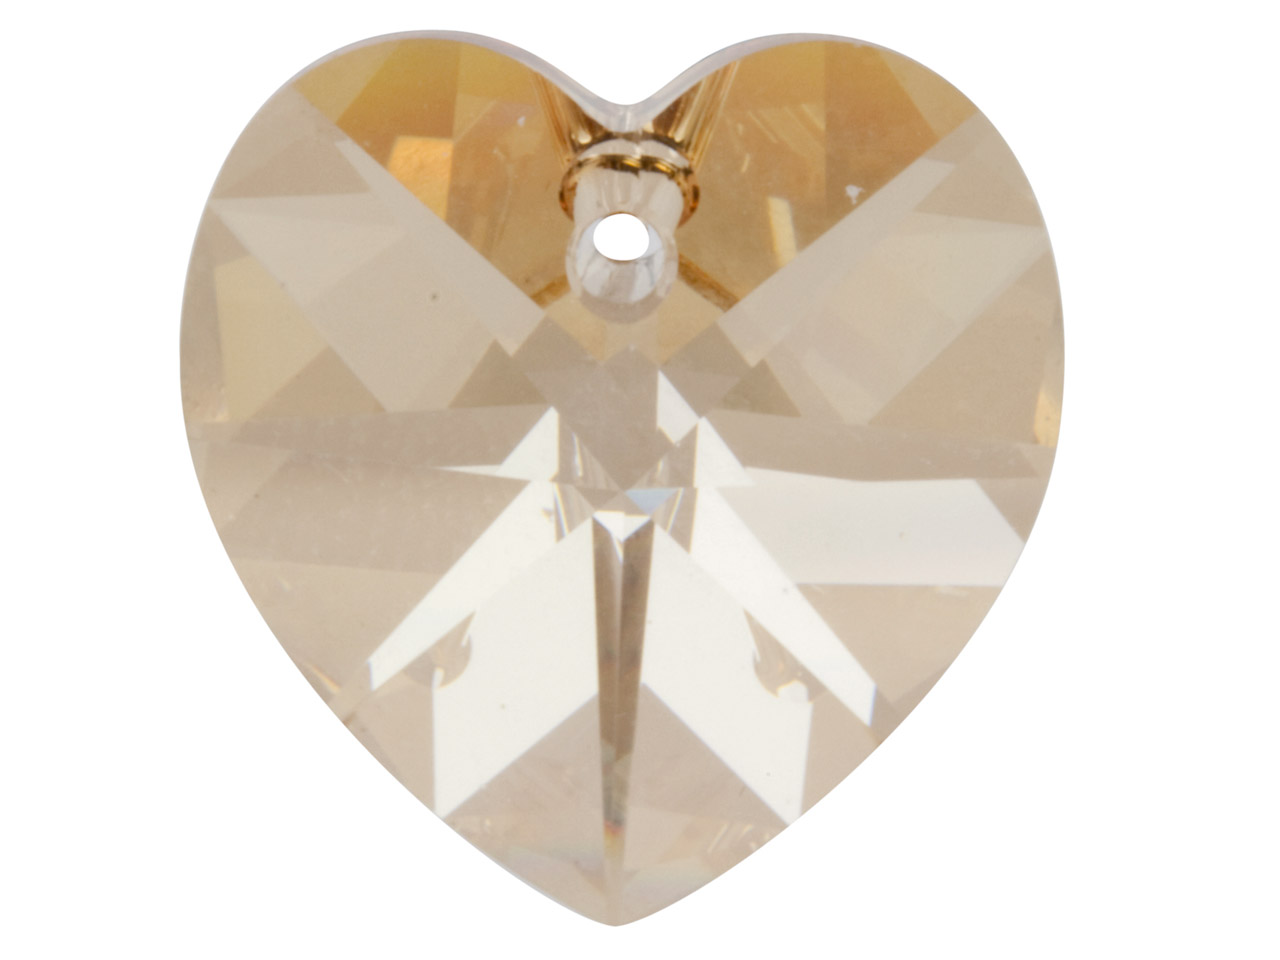 Swarovski Crystal Pack of 2 Heart, 6228, 10mm Crystal Golden Shadow